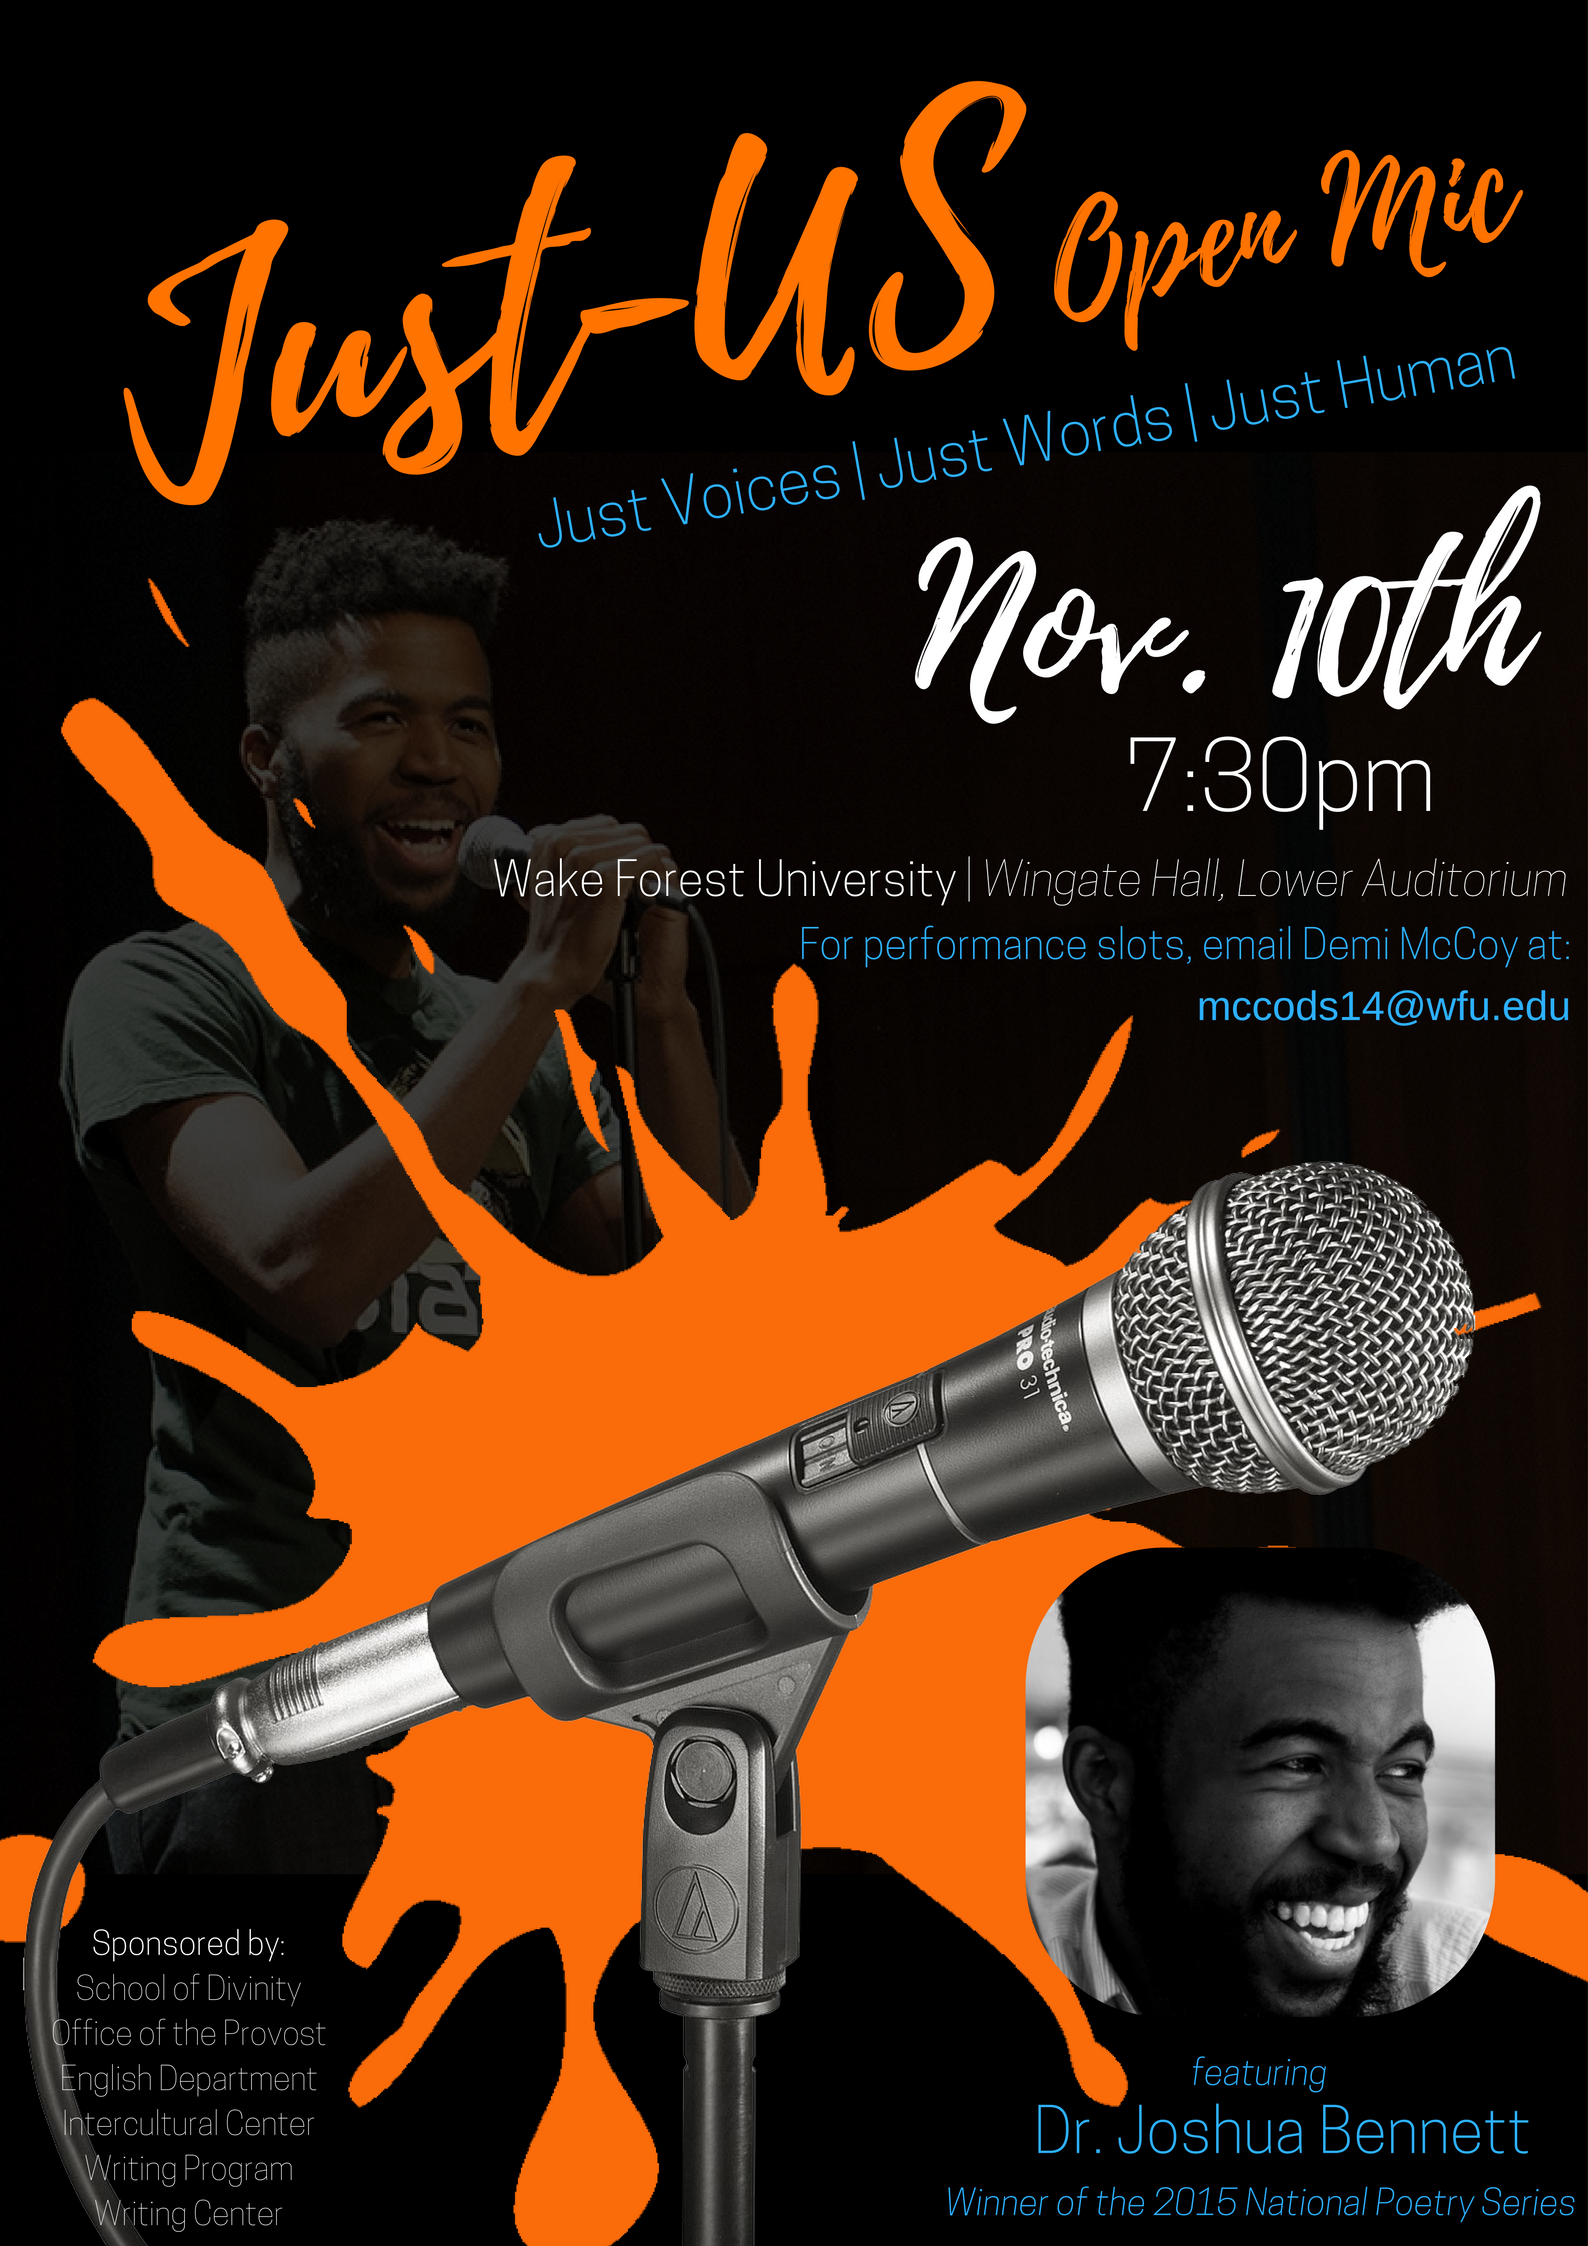 Creative flyer for the Just-US Open Mic Event in November 2017